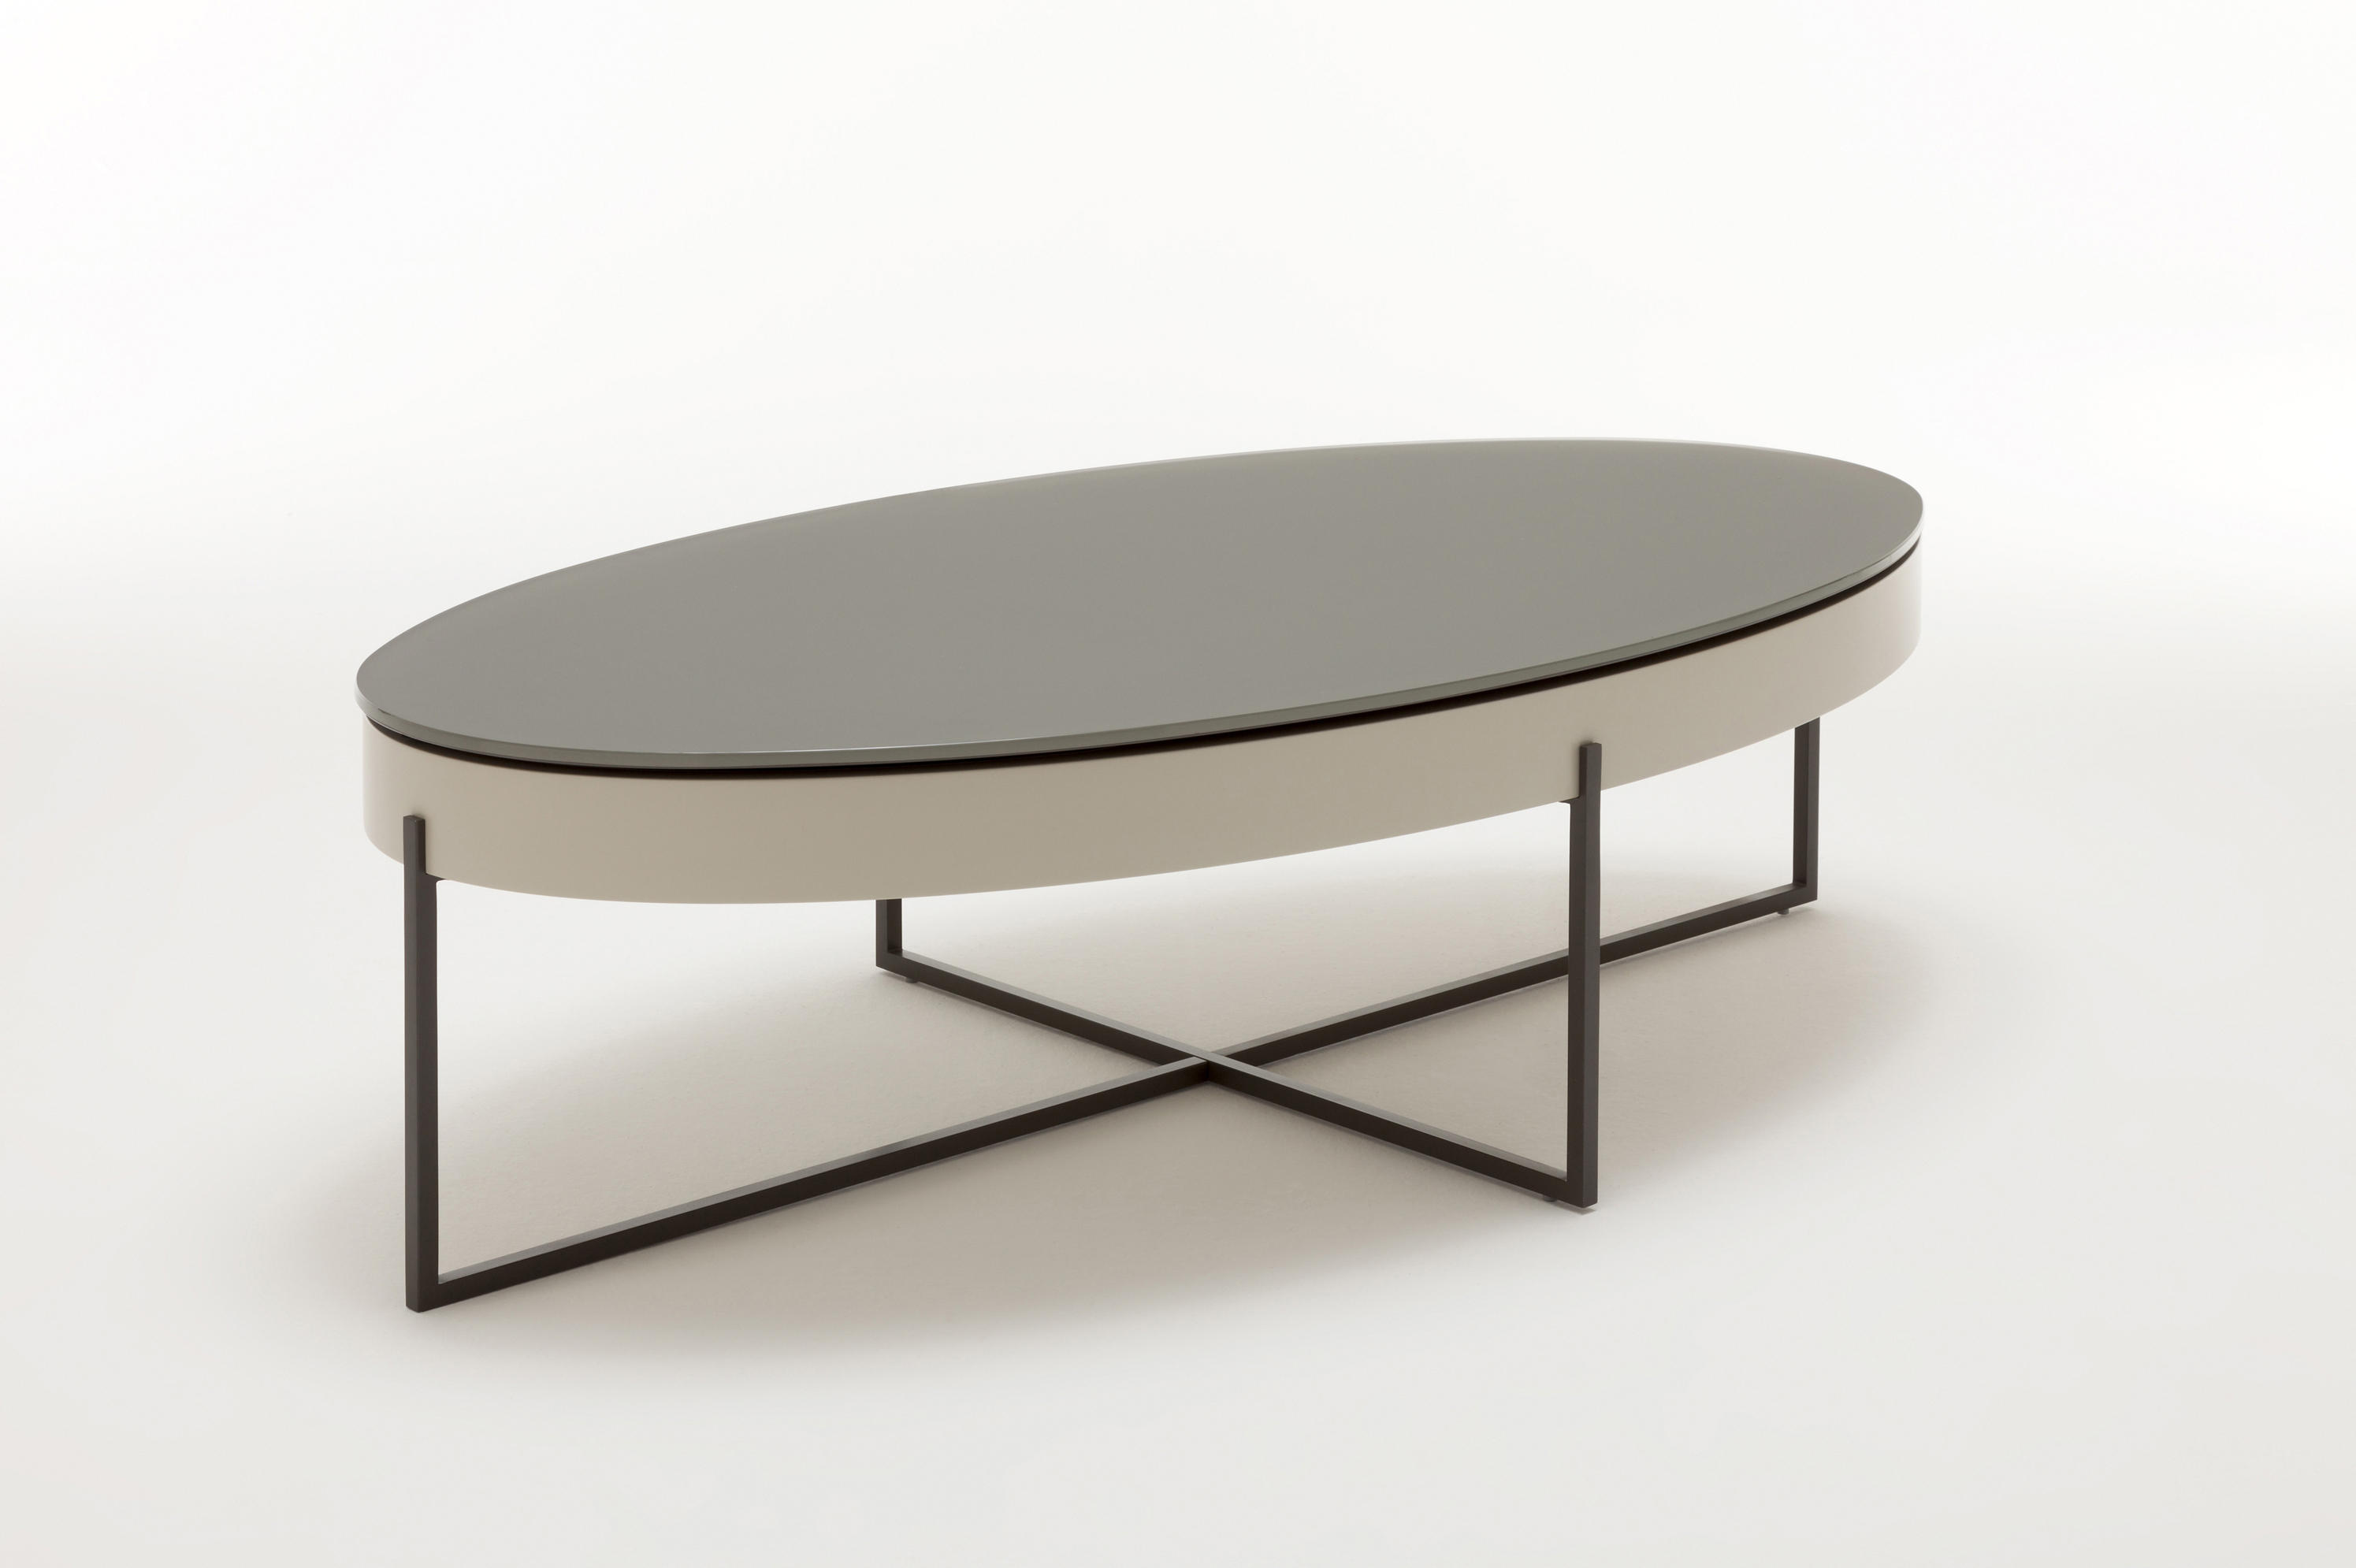 Rolf Benz Tisch Rolf Benz 8440 Coffee Tables From Rolf Benz Architonic